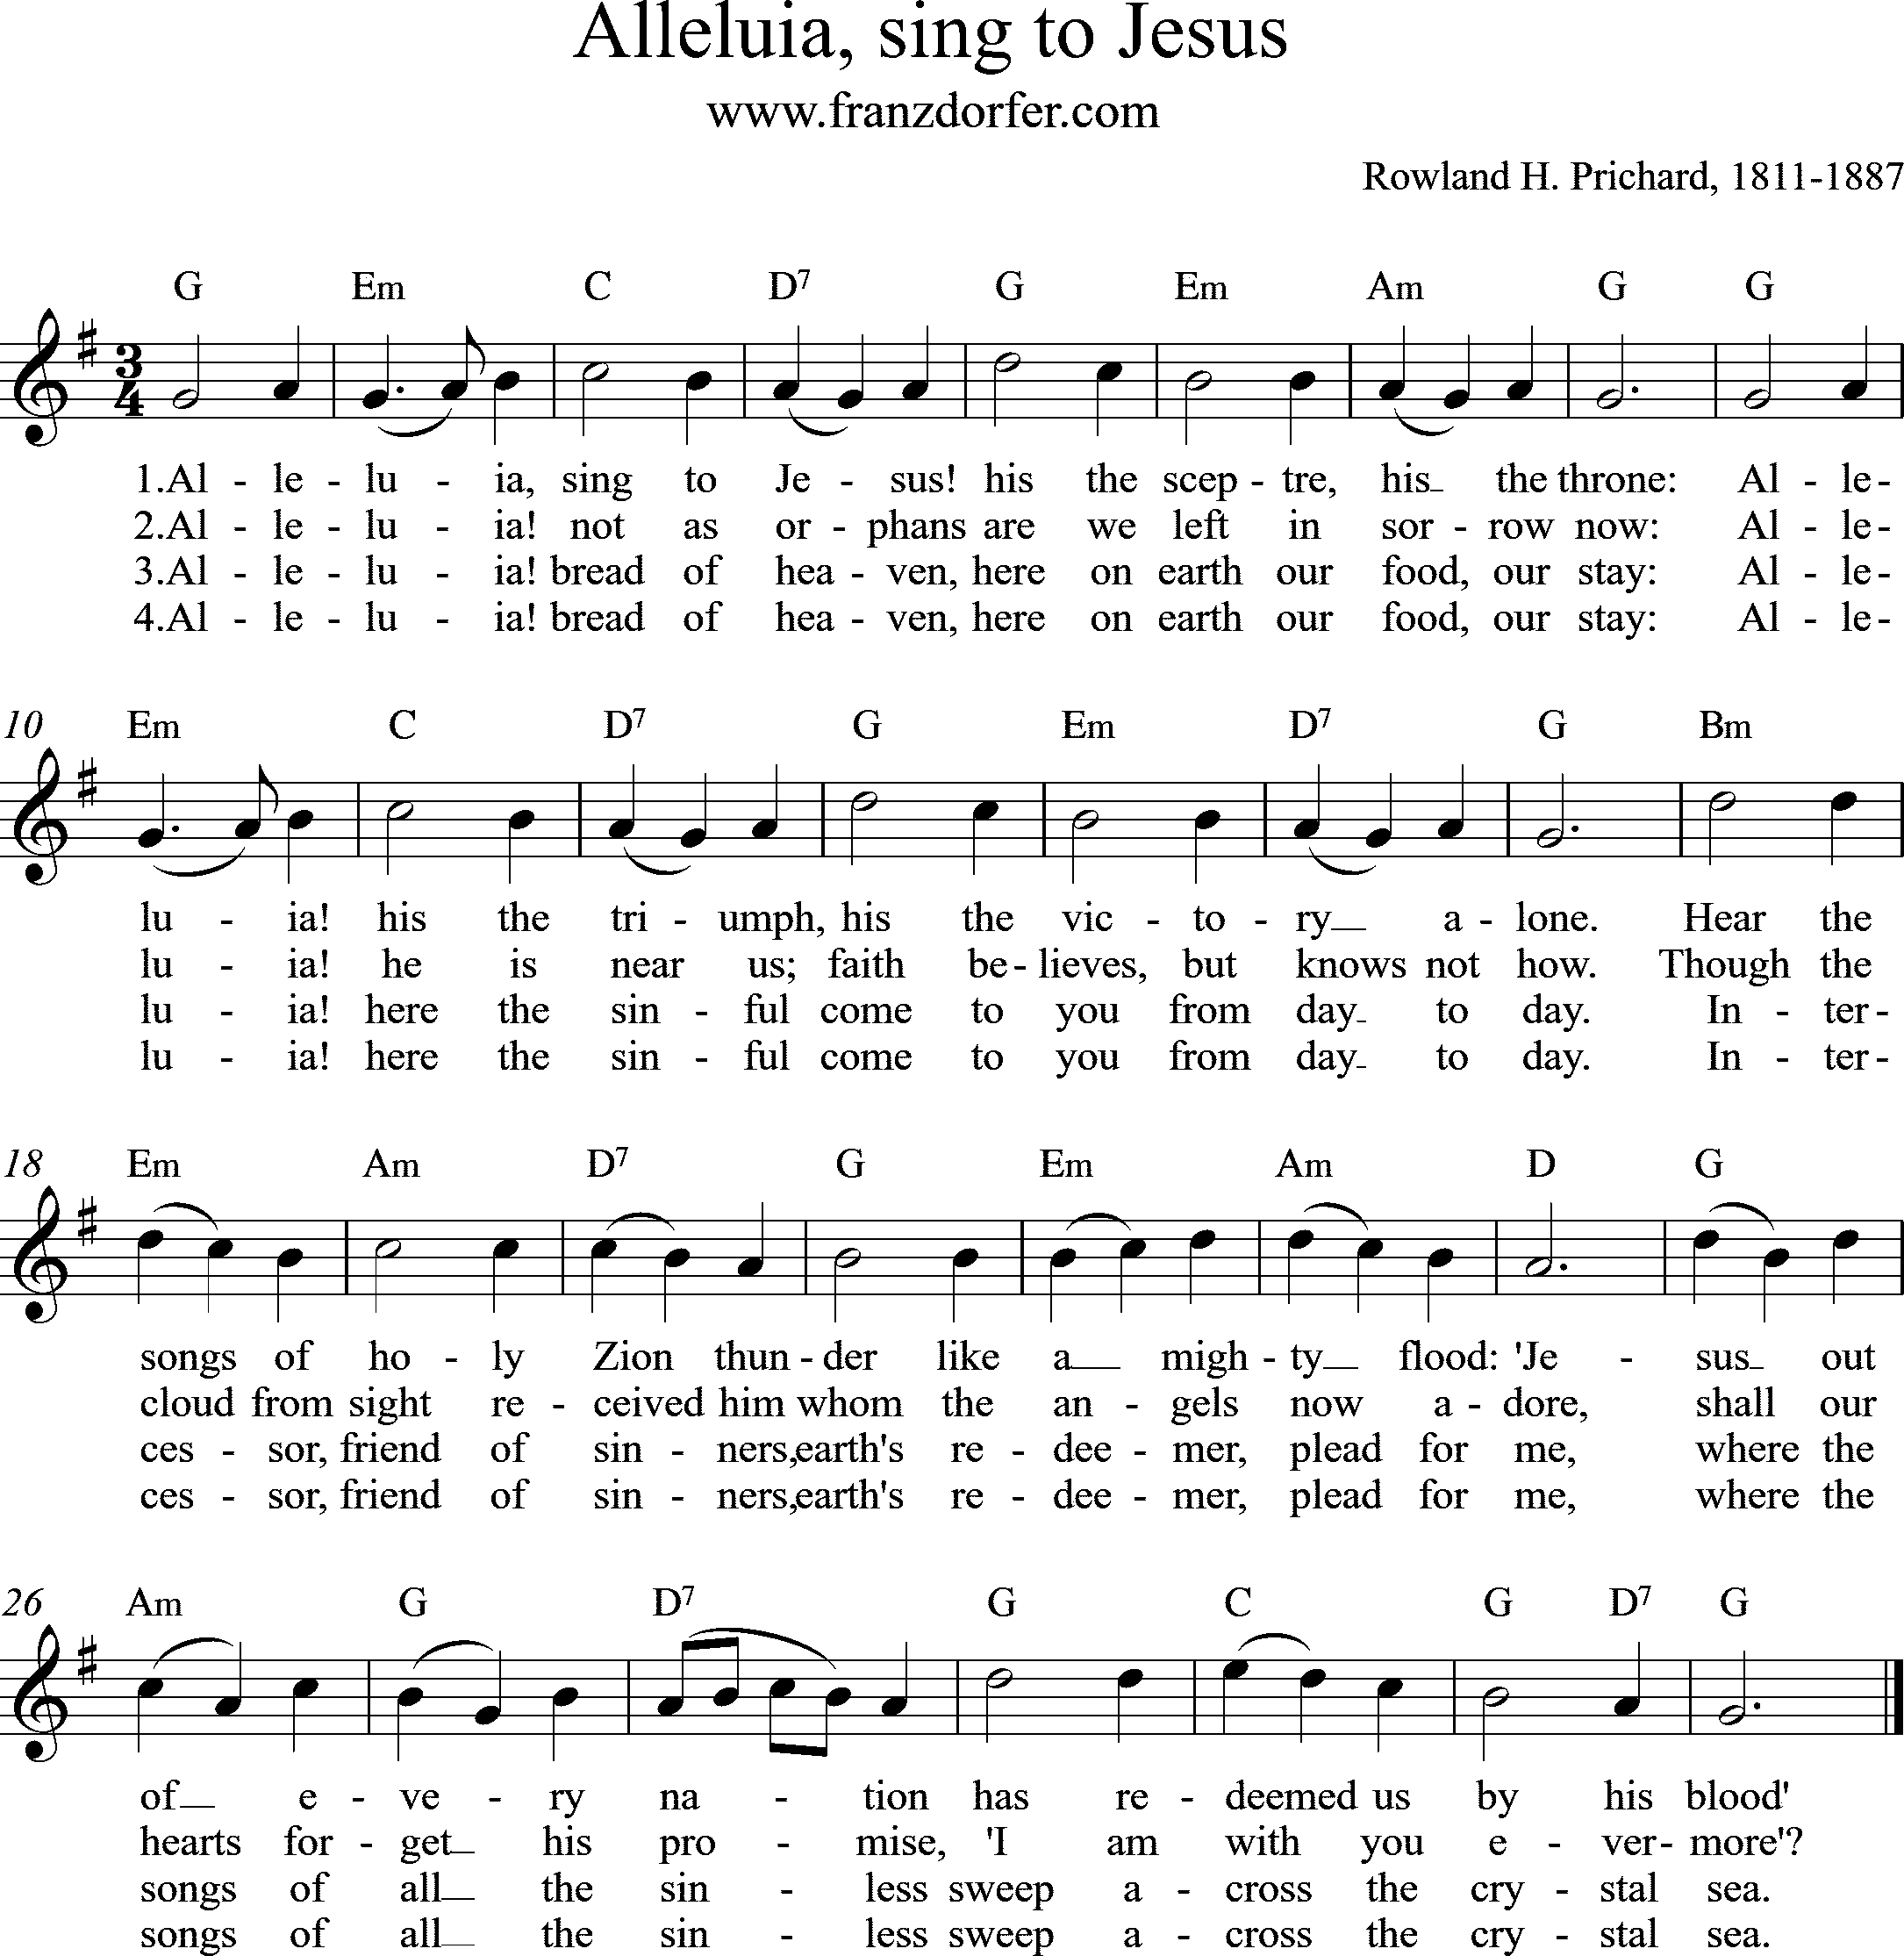 sheetmusic, Alleluia, sing to Jesus